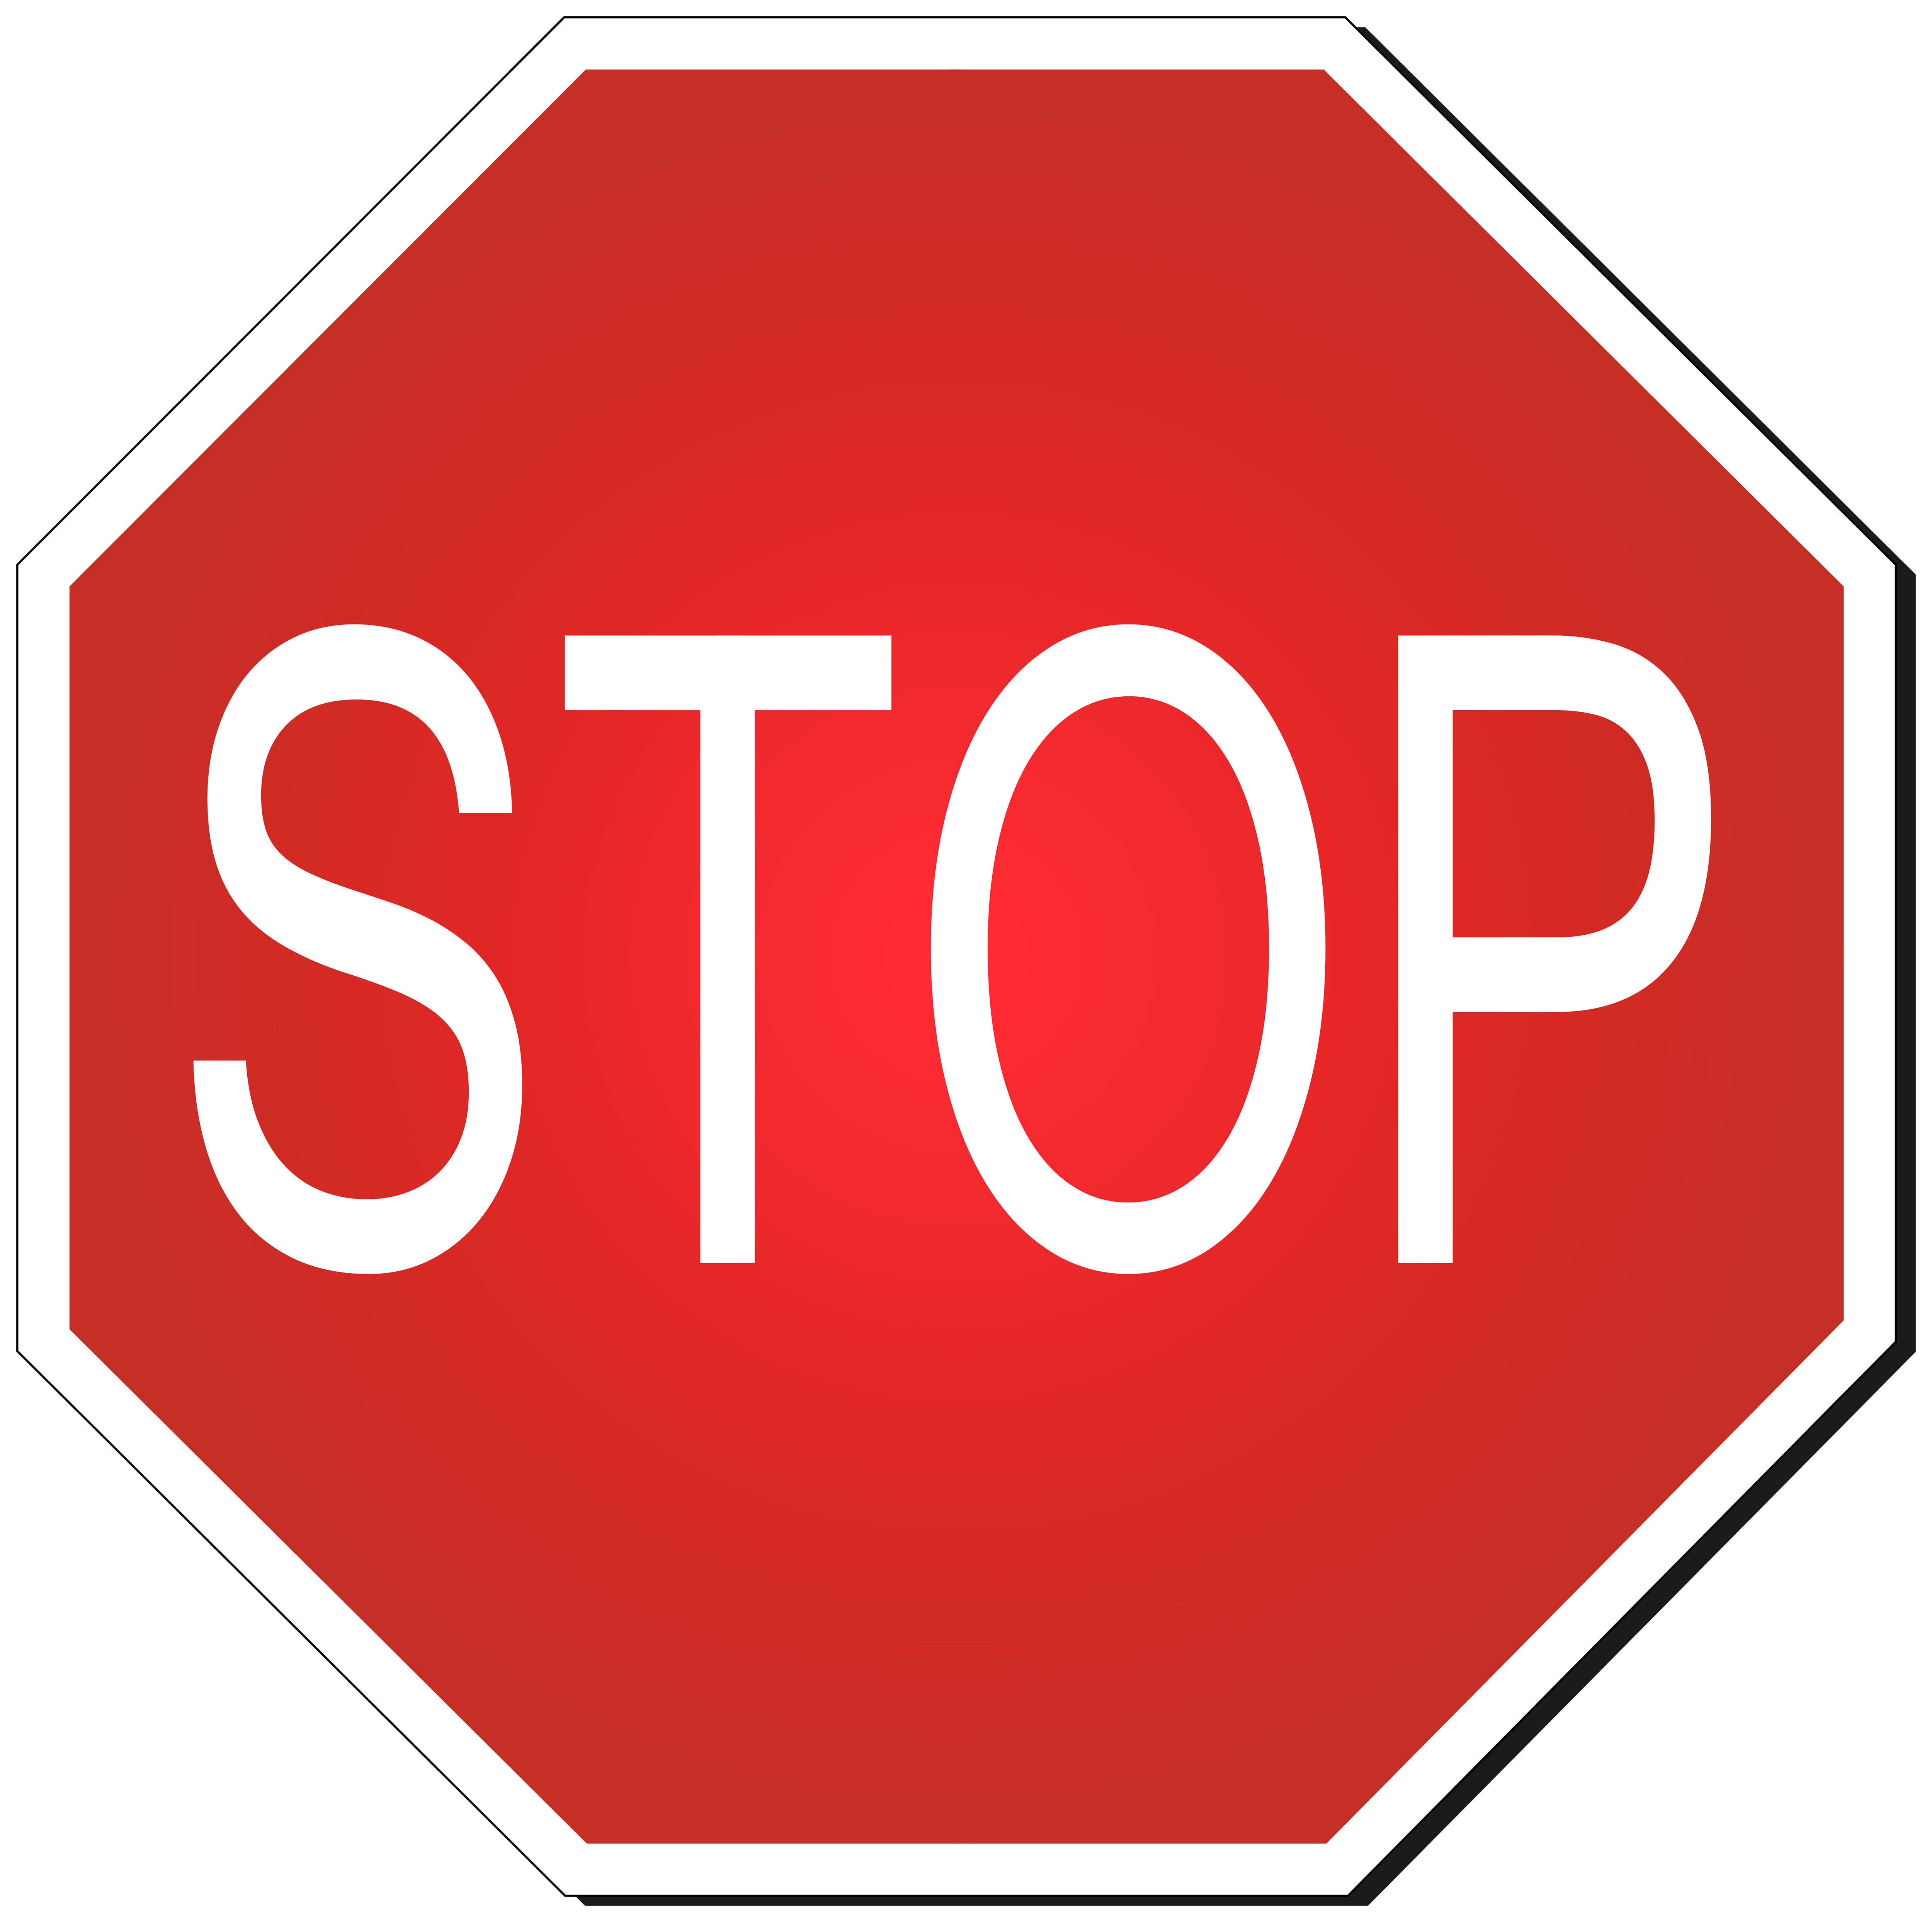 Sign clipart. Stop road png best